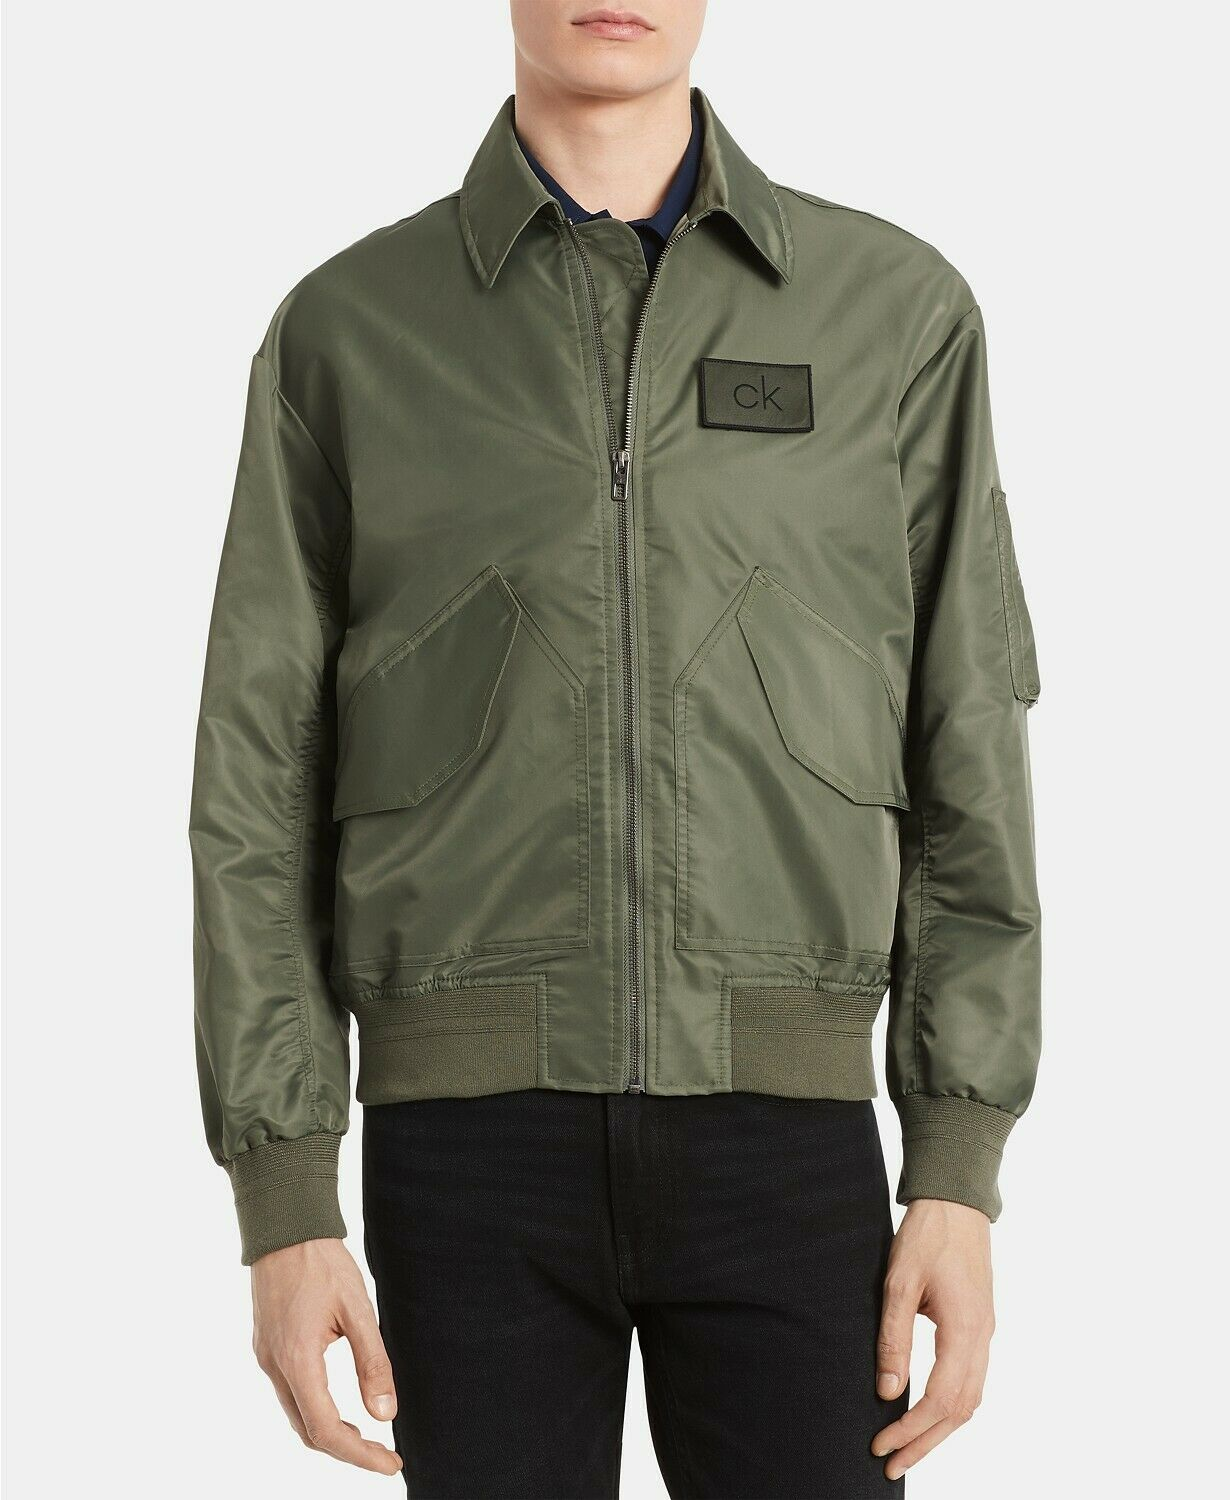 NWT $178 Calvin Klein Men's Water-Resistant Bomber Jacket Co